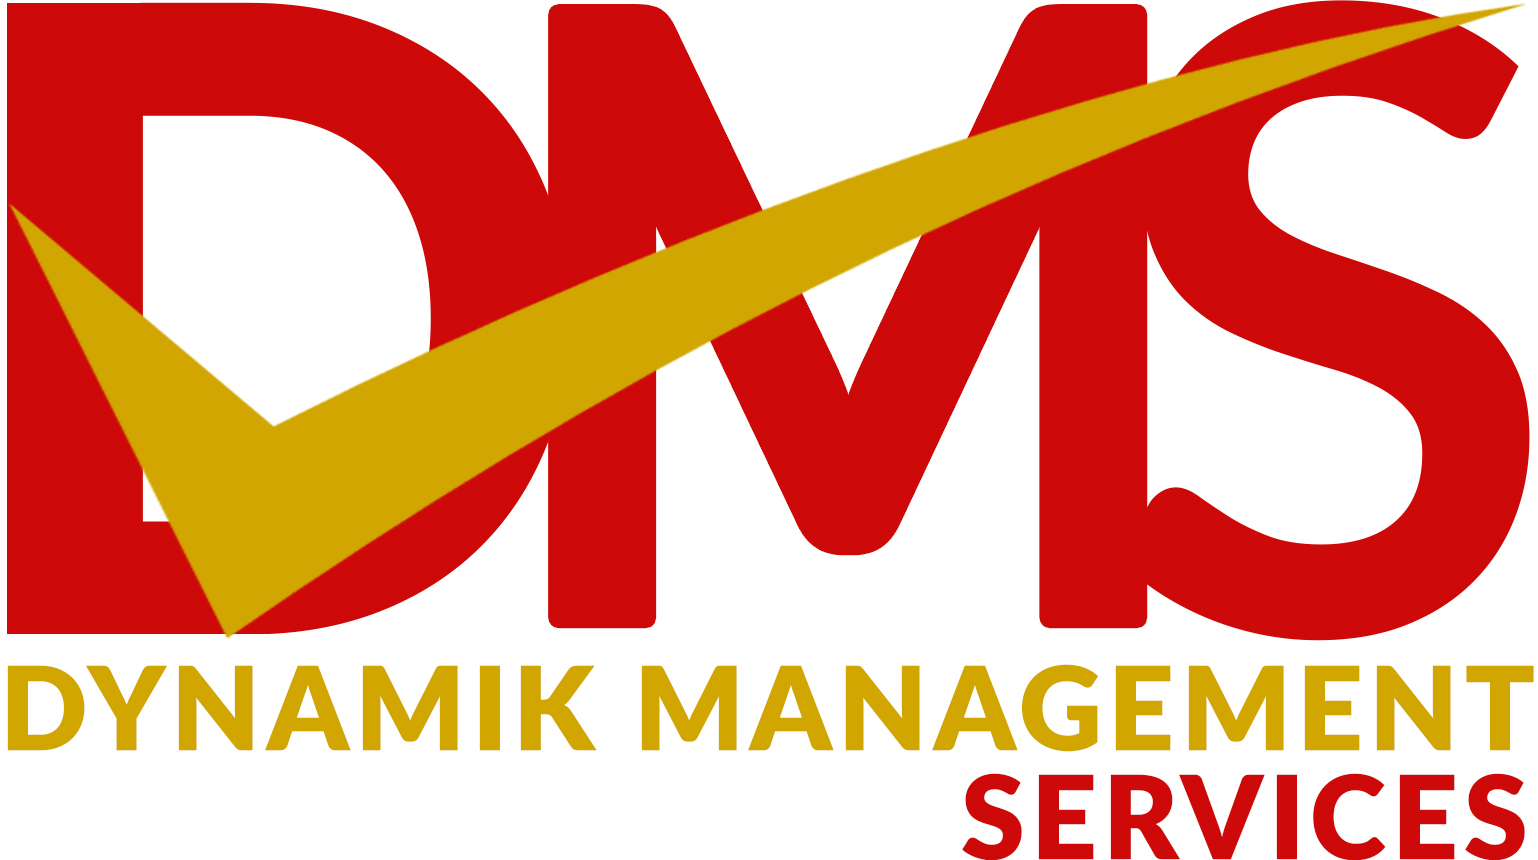 Dynamik Management Services Ltd